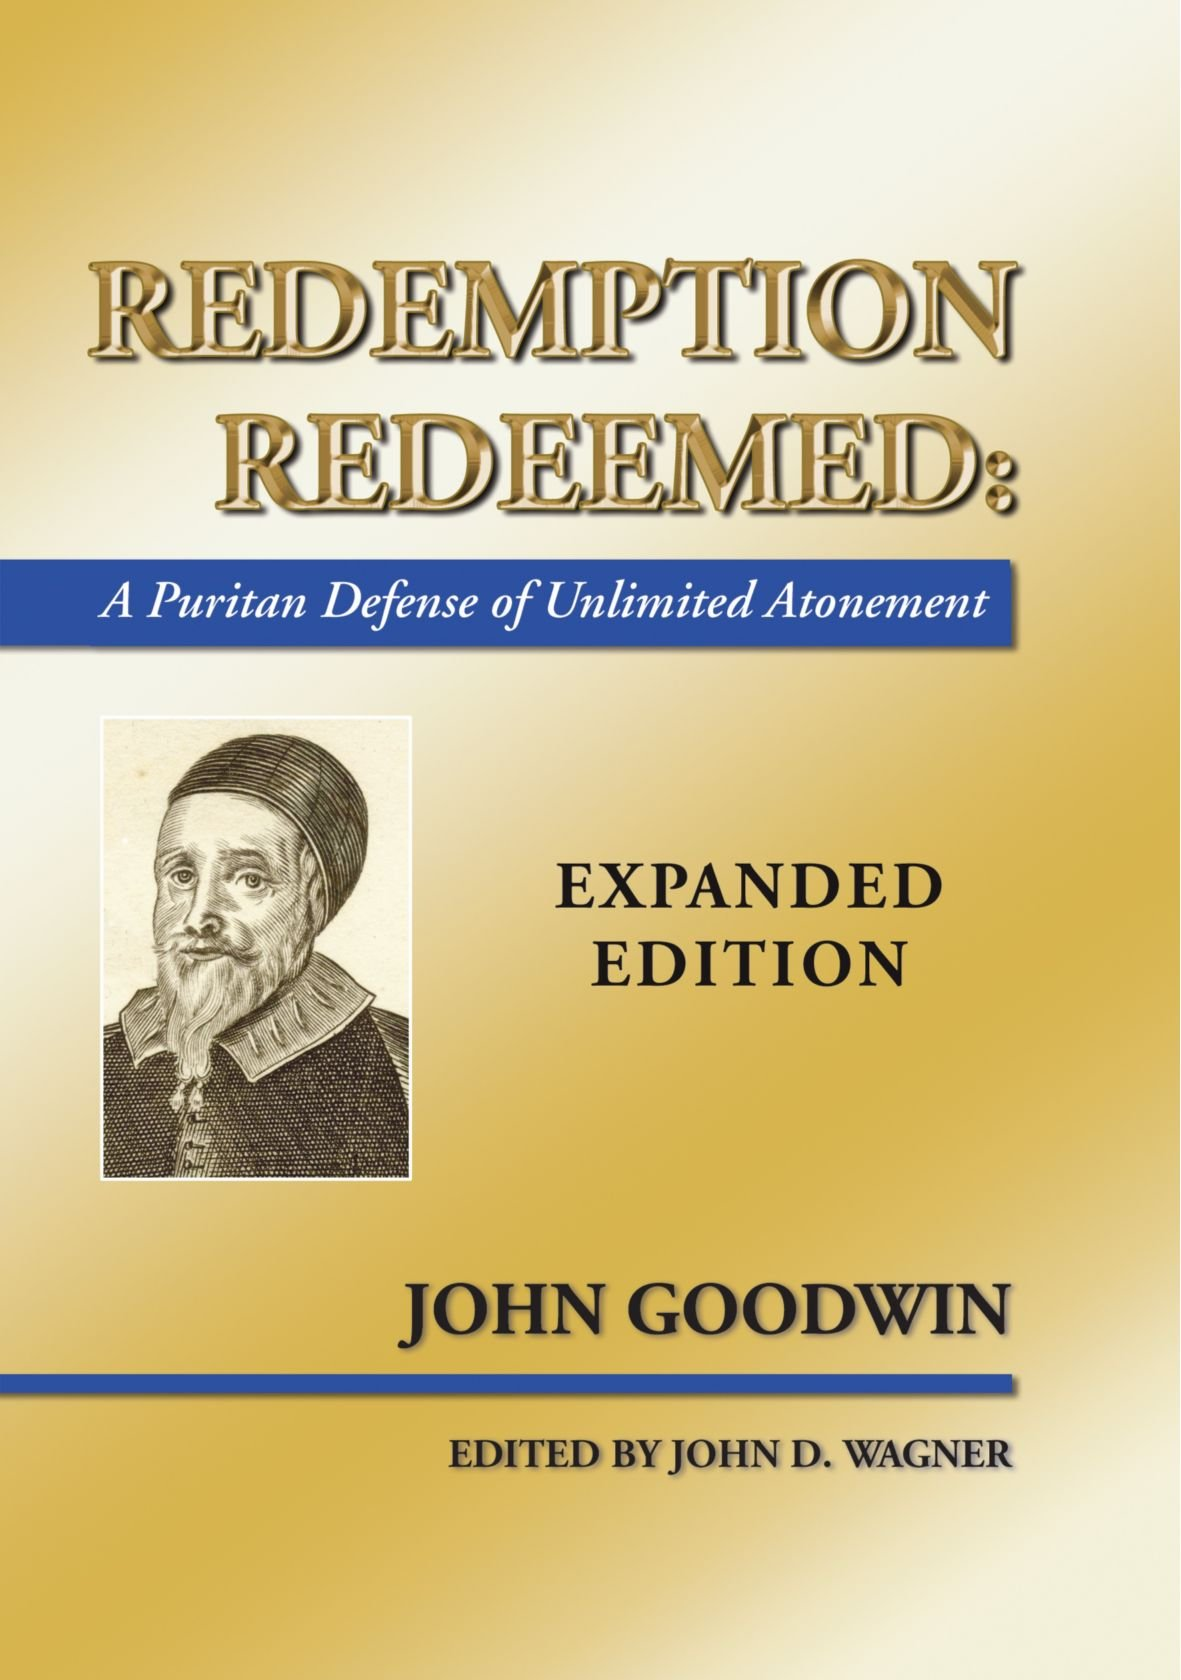 Redemption Redeemed: A Puritan Defense Of Unlimited Atonement, Expanded  Edition: John Goodwin: 9781592447305: Amazon: Books